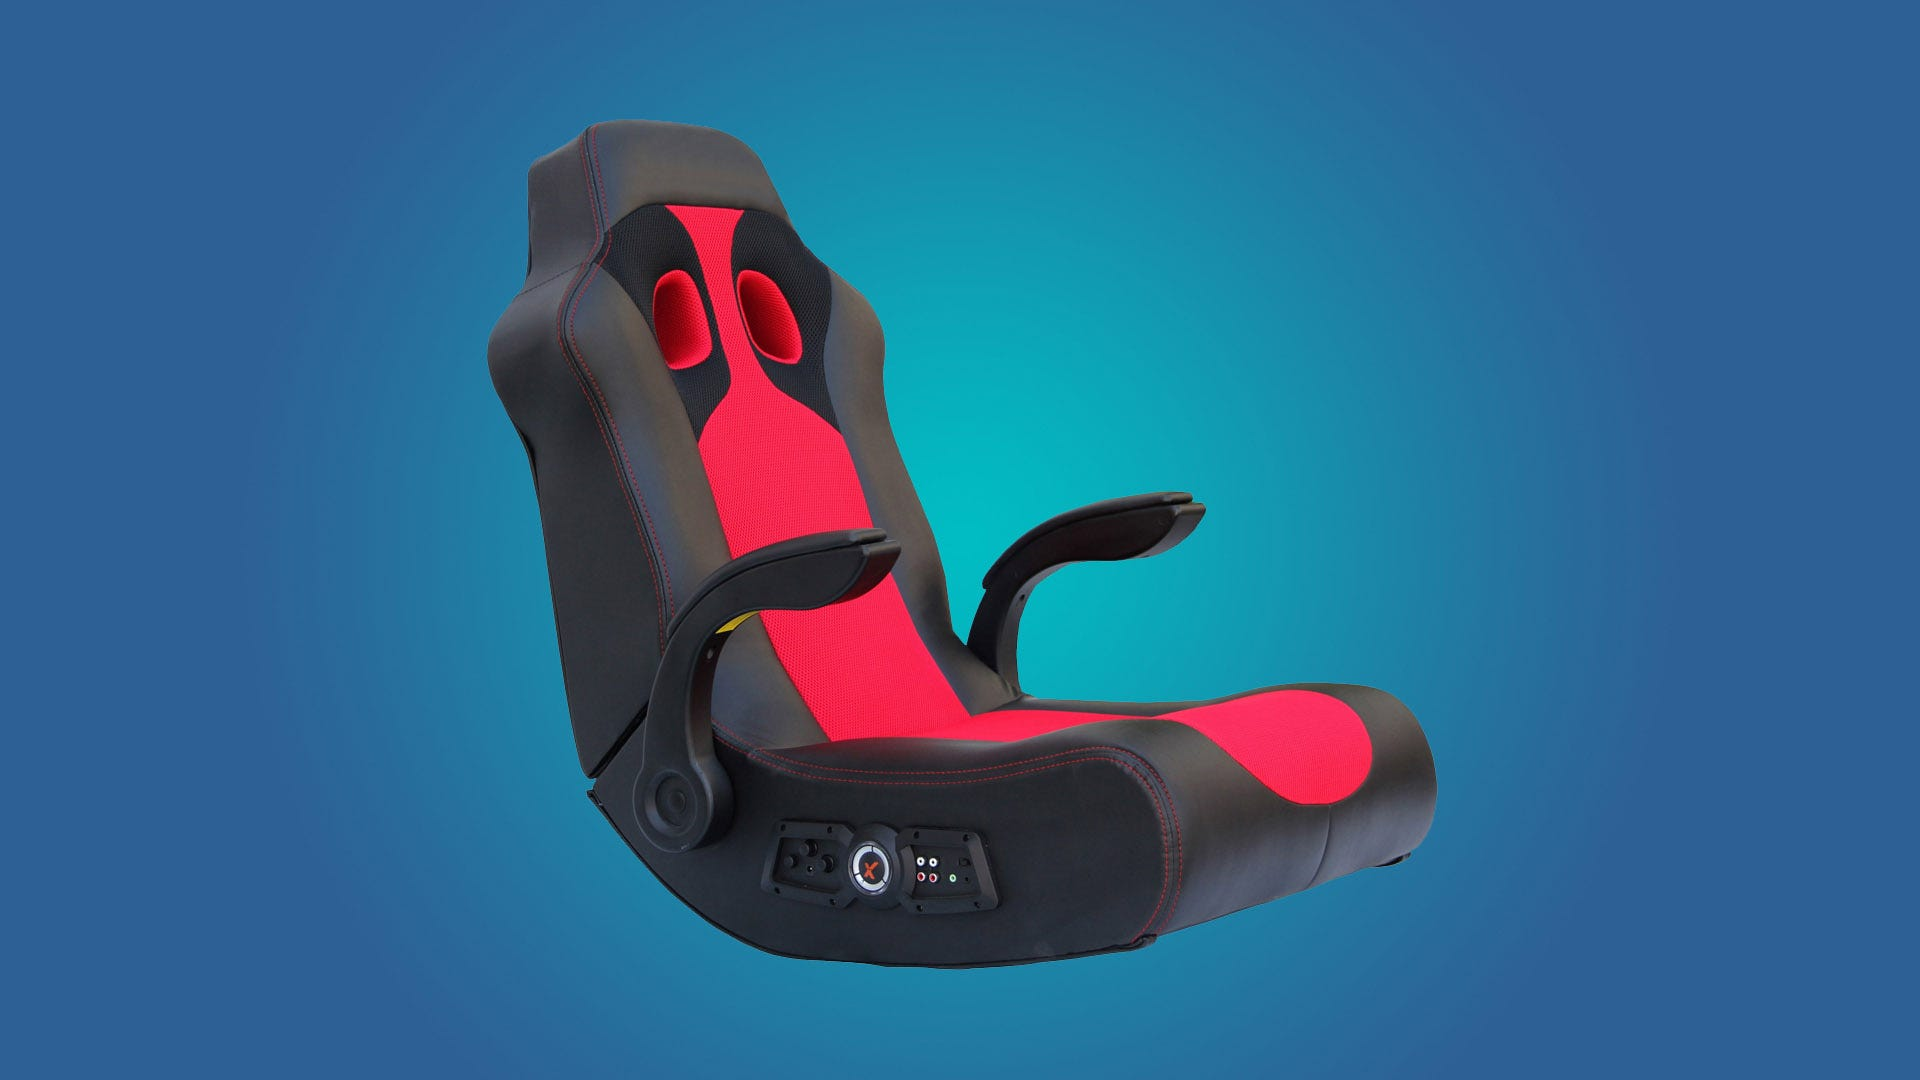 Admirable De Beste Gaming Wip Stoelen Voor De Gamer In Je Leven Allinfo Machost Co Dining Chair Design Ideas Machostcouk